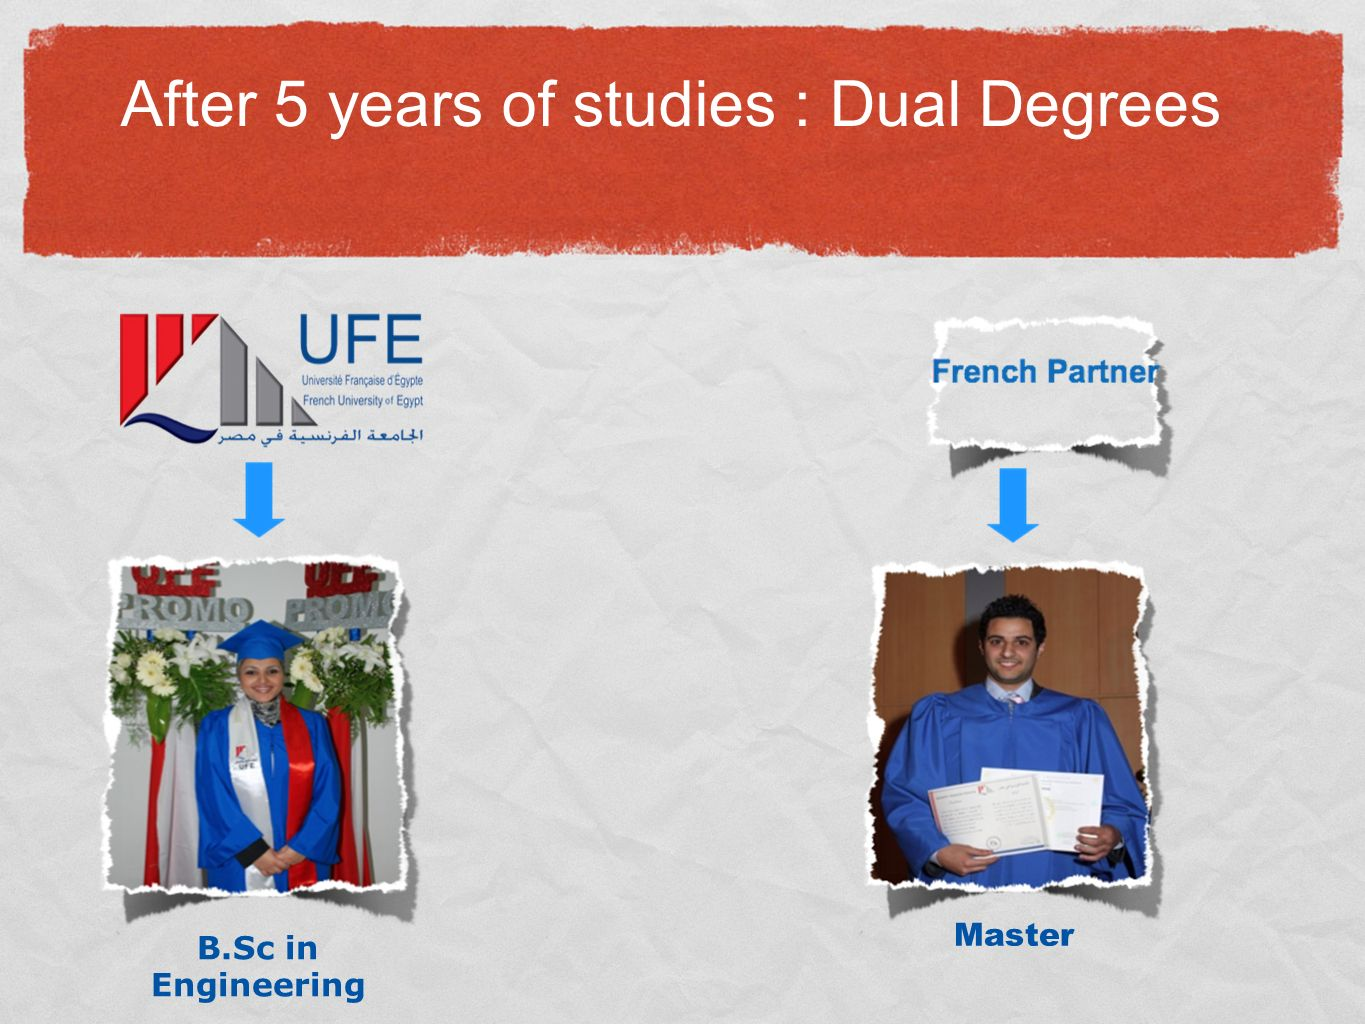 B.Sc in Engineering Master After 5 years of studies : Dual Degrees